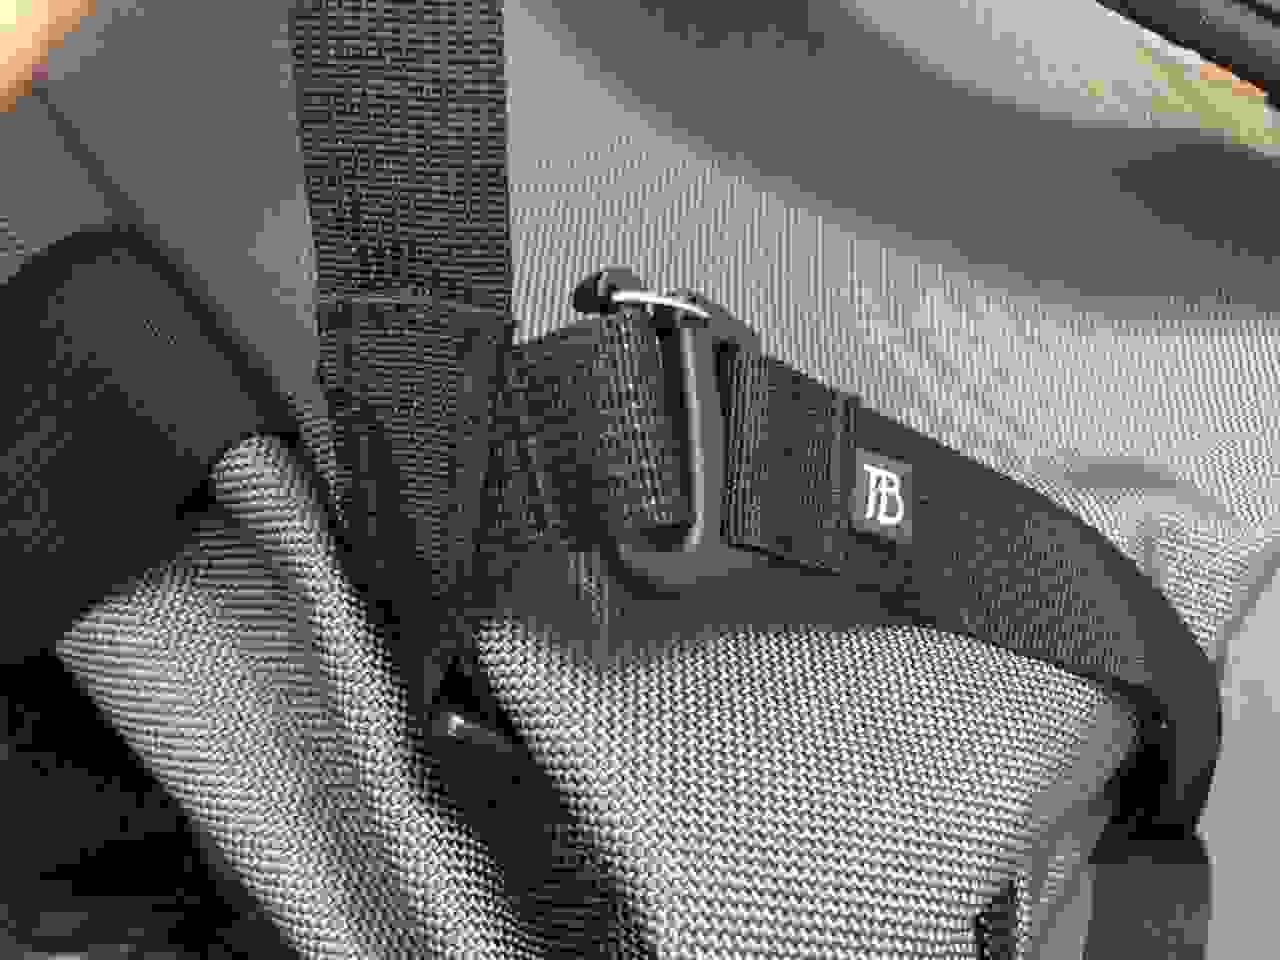 Tom Bihn Aeronaut  30 waist strap attachment